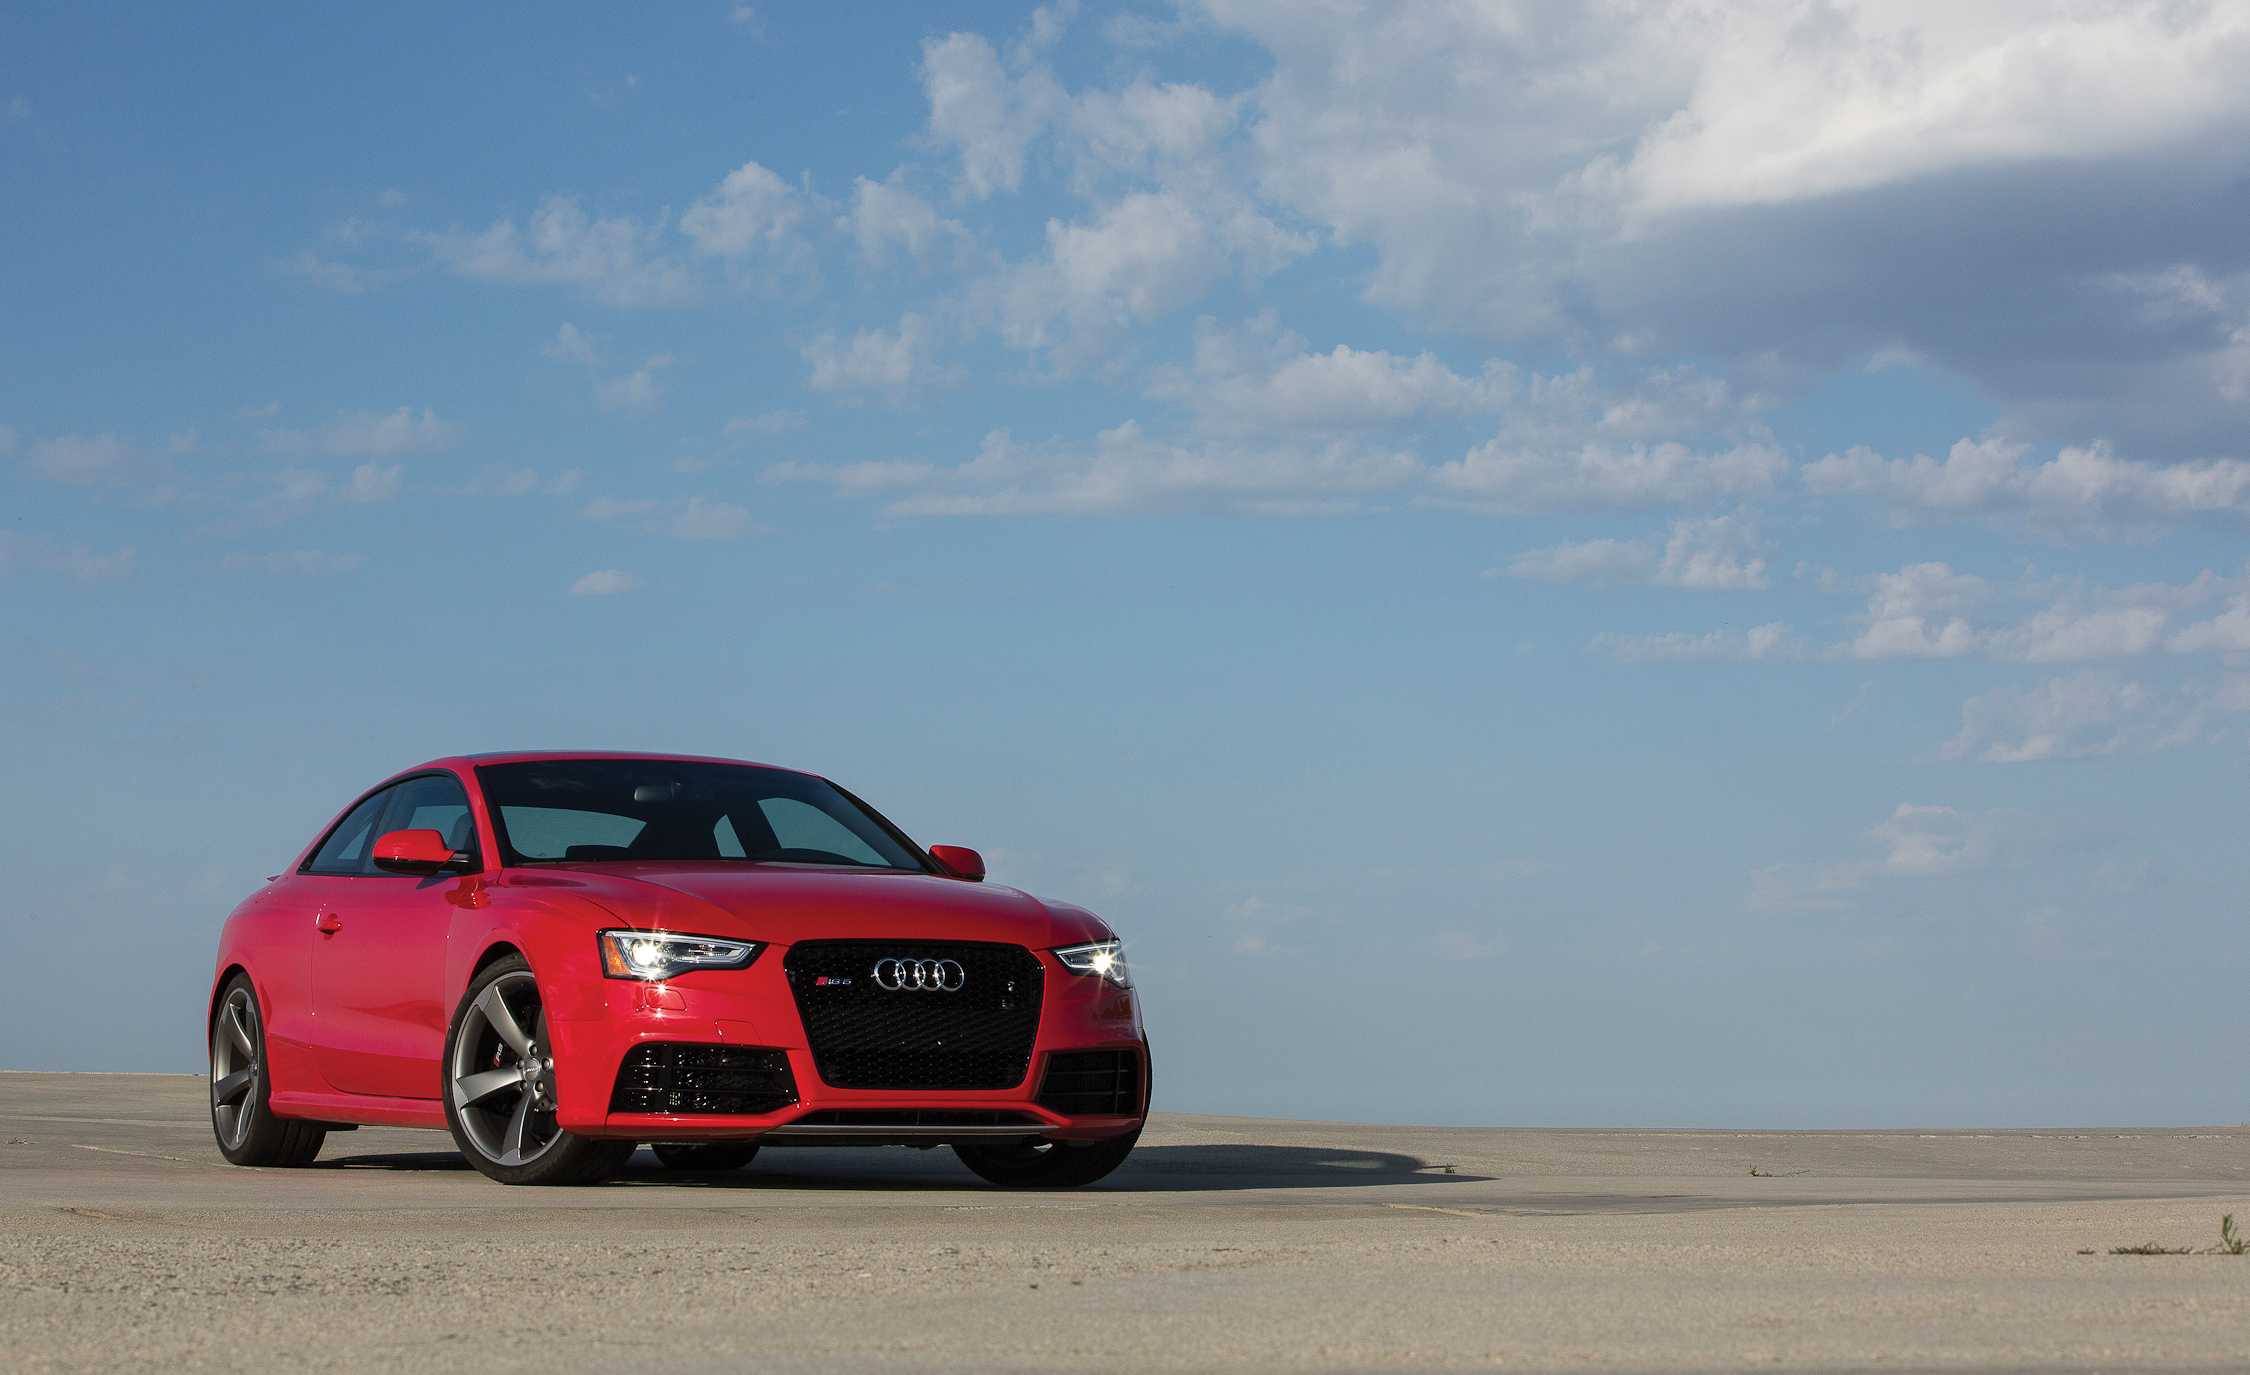 2013 Audi RS 5 Exterior (Photo 2 of 41)